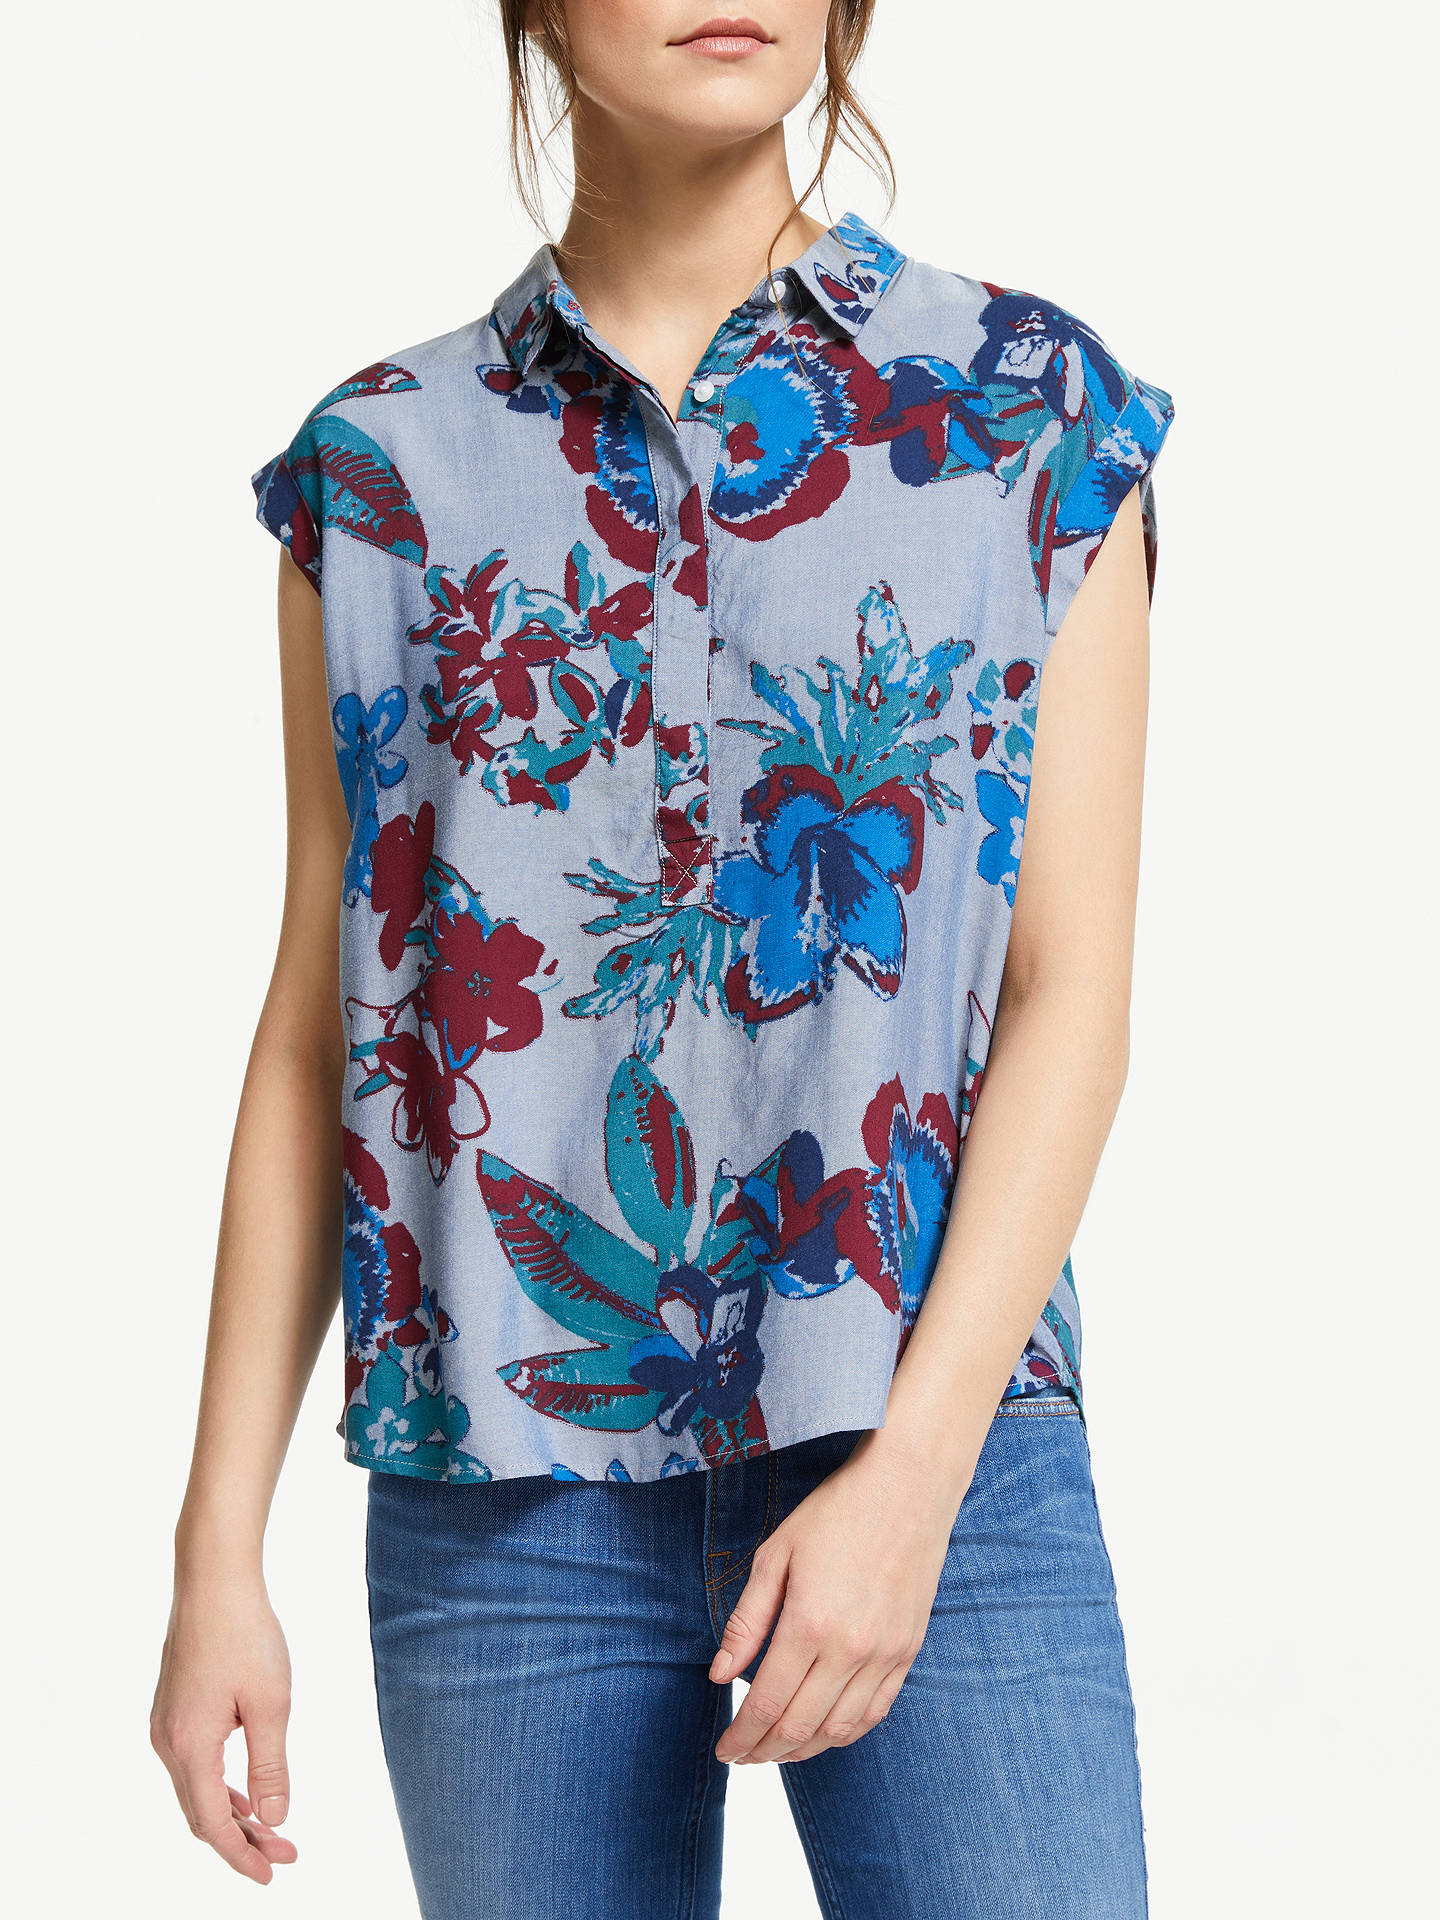 111849a3555 Buy Lee Sleeveless Floral Blouse